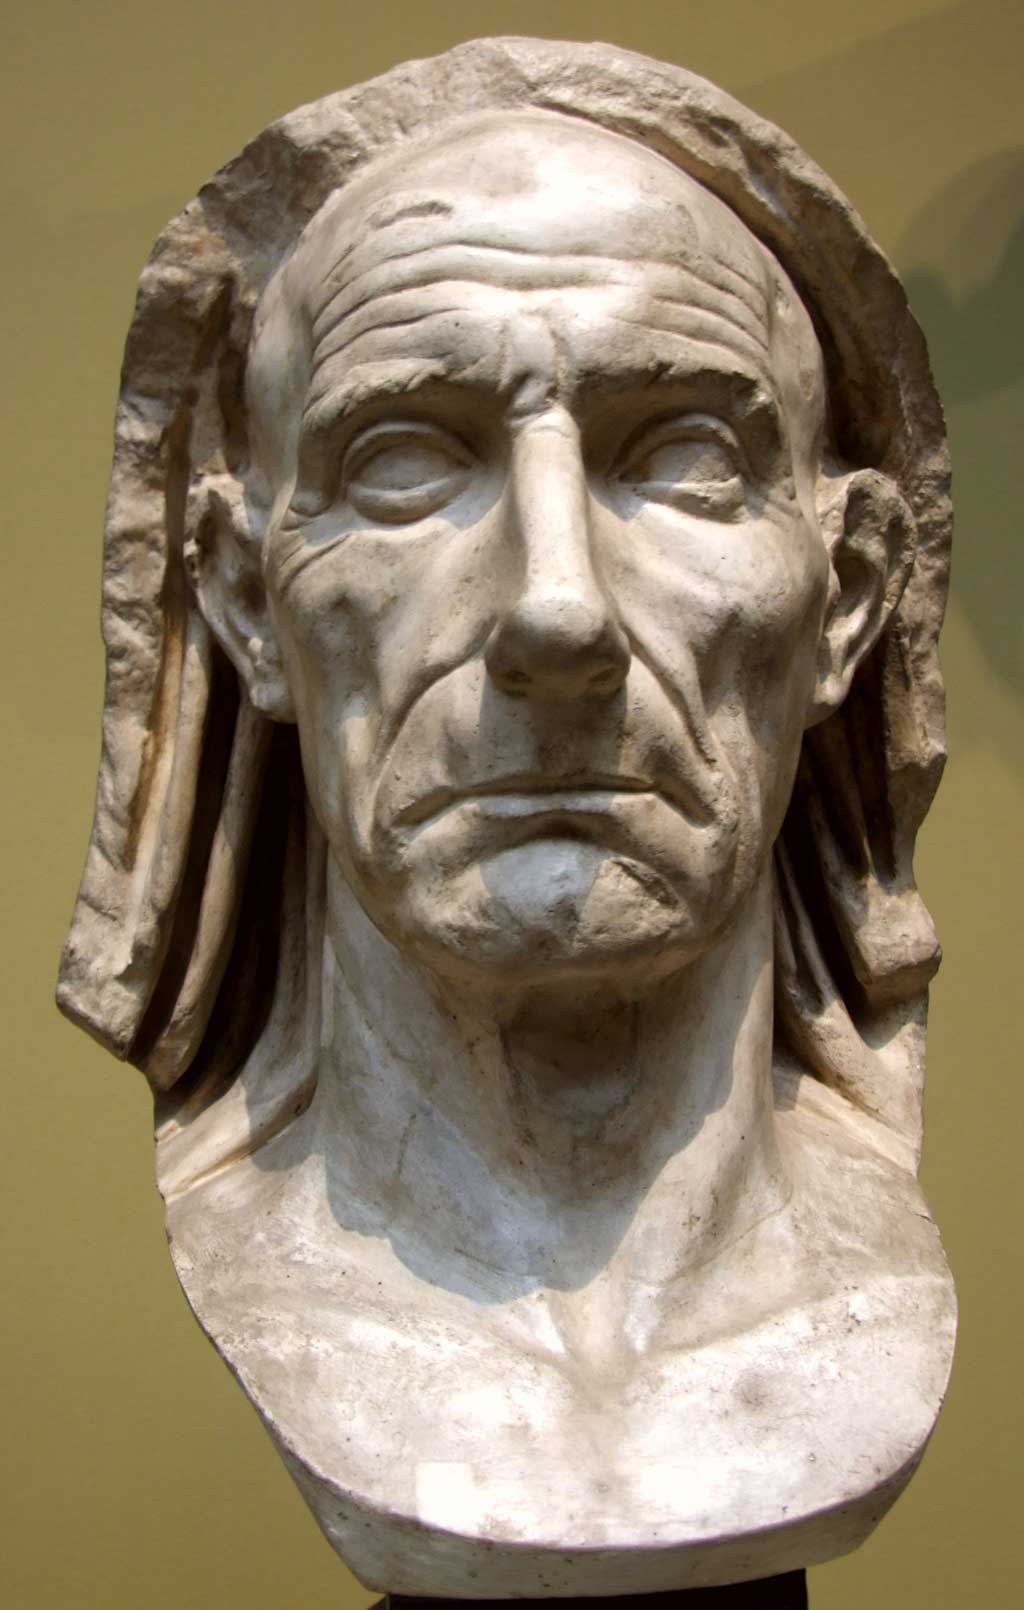 This photo shows the Bust of an Old Man. Verism refers to a hyper-realistic portrayal of the subject's facial characteristics, such as the wrinkles on this man's face.